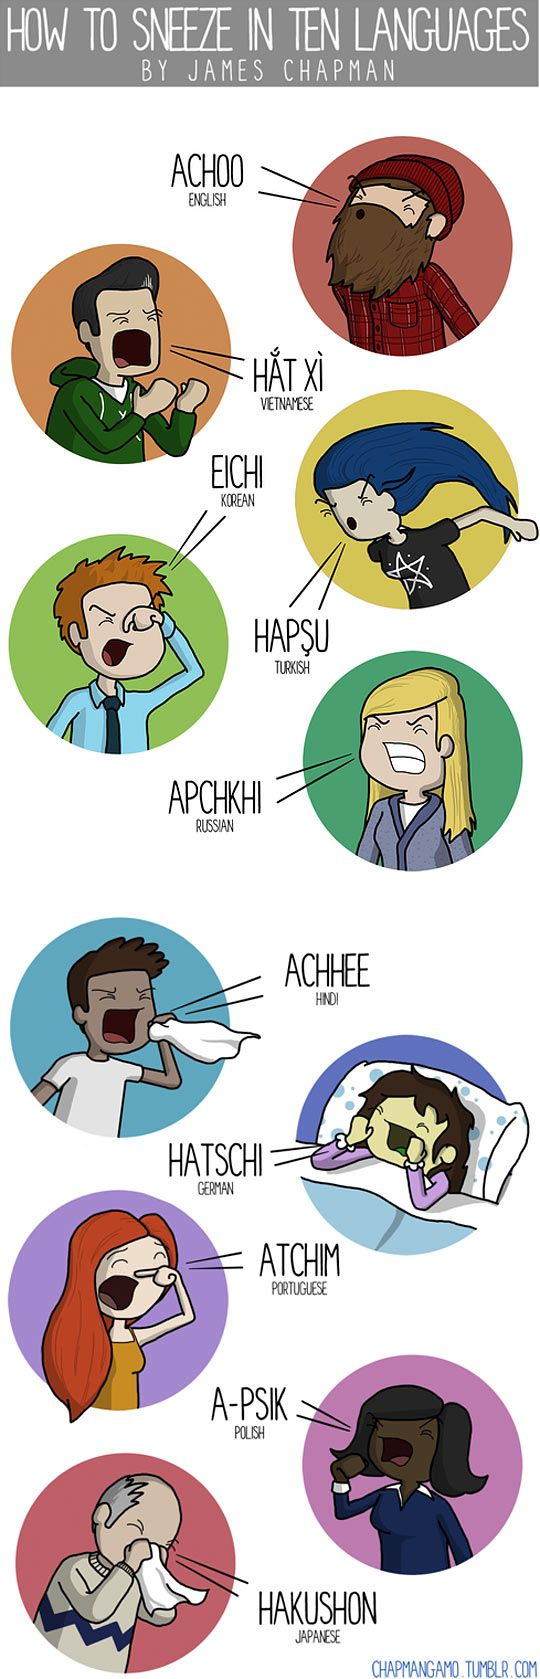 Sneezing in 10 languages...